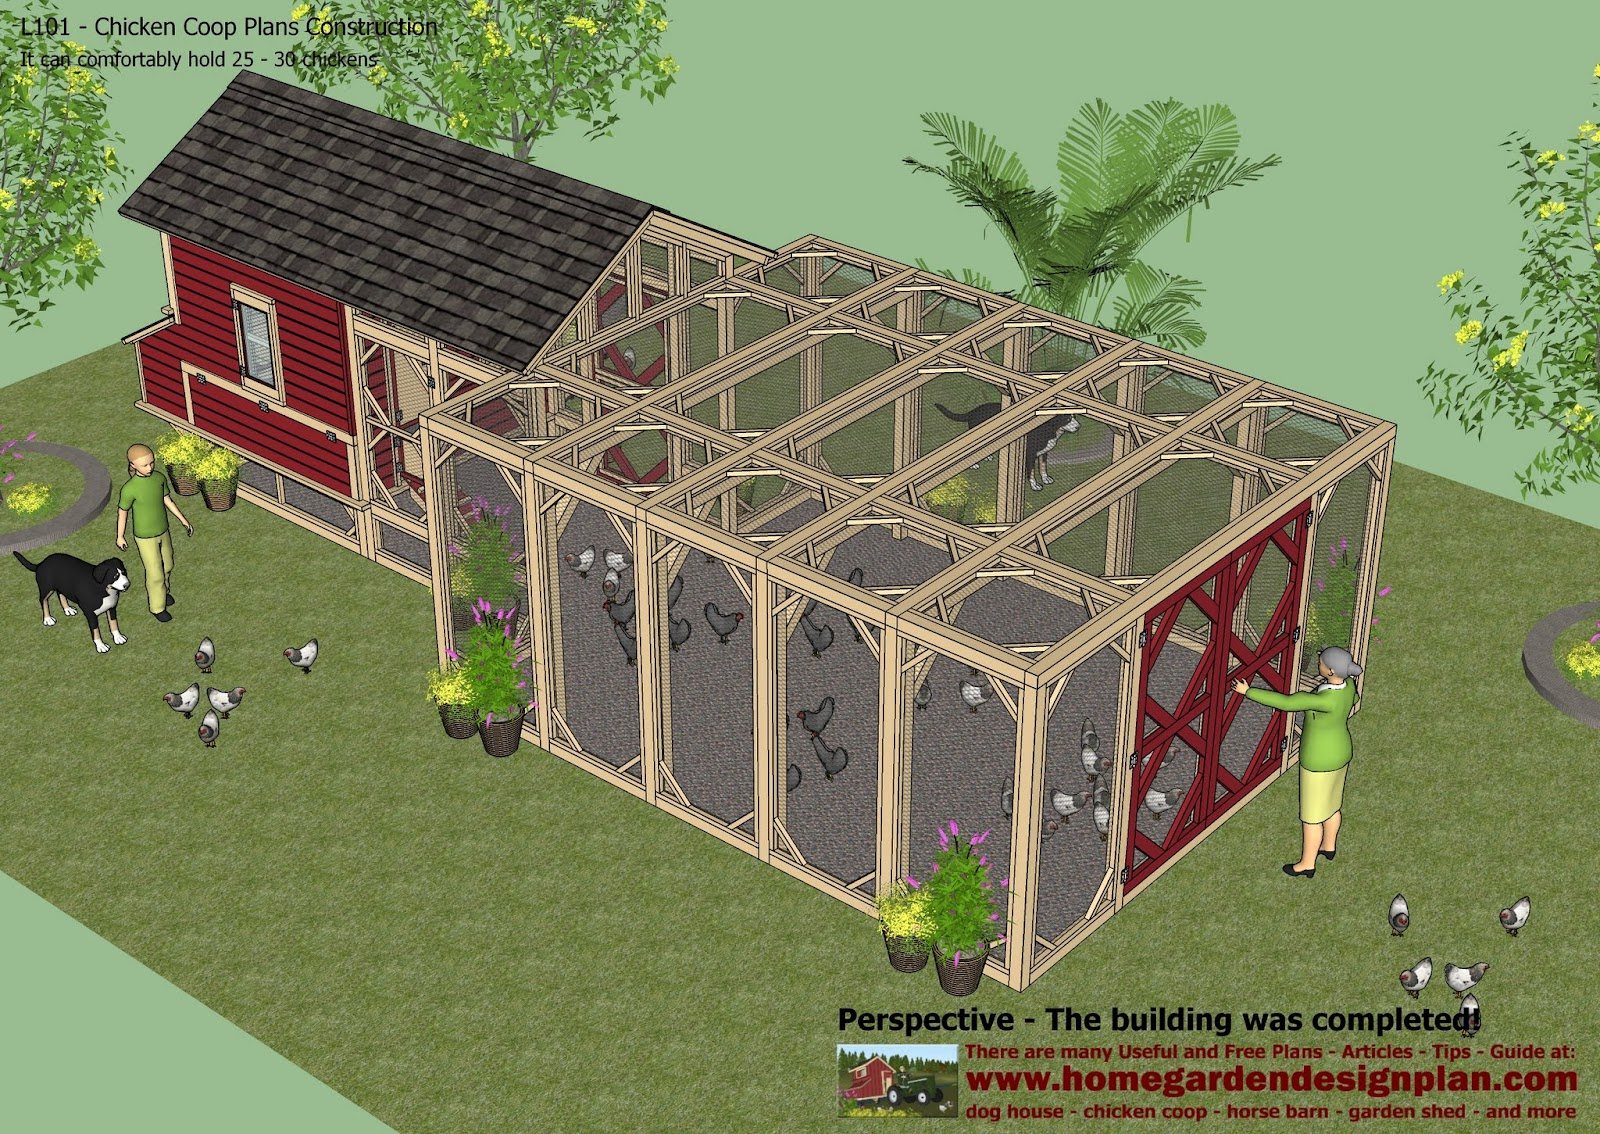 Home Garden Plans Home Garden Plans L101 Chicken Coop Plans Construction Chicken C